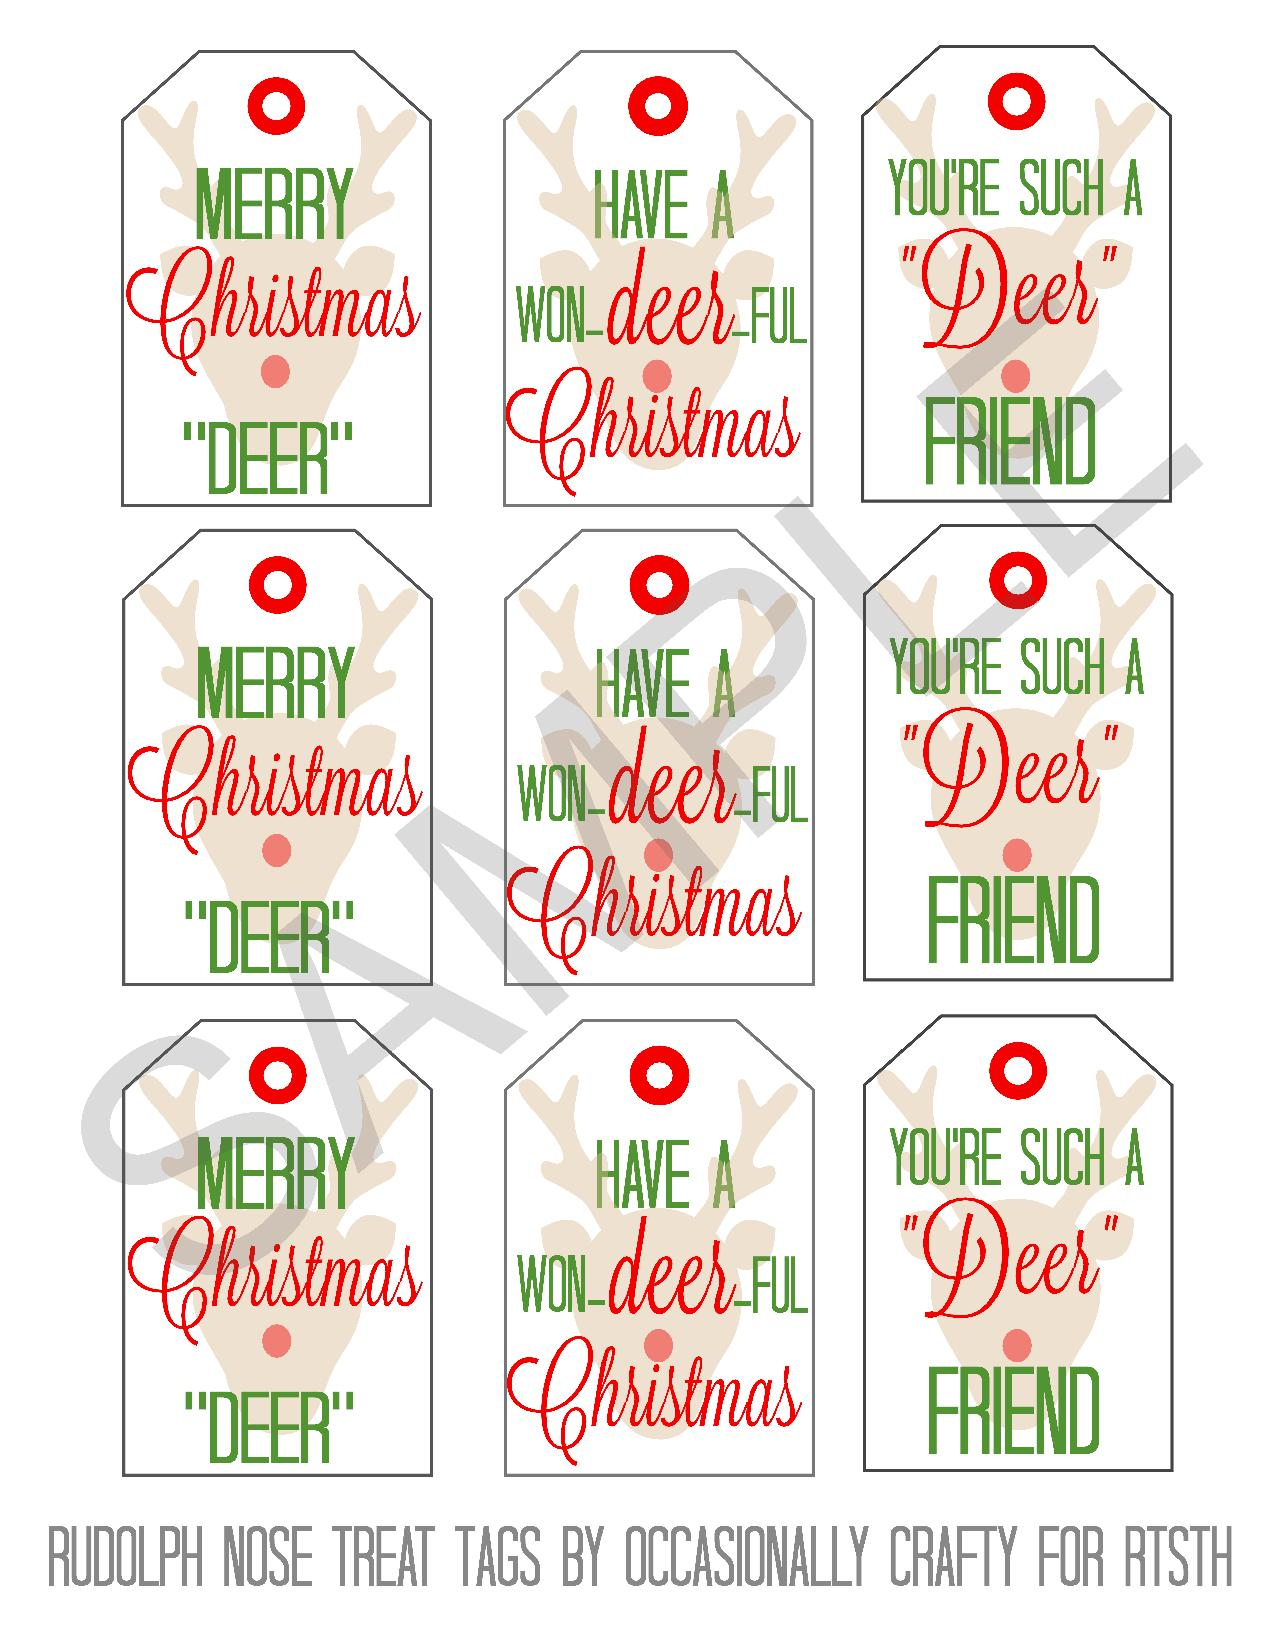 Rudolph Nose Treats Printable Gift Tags